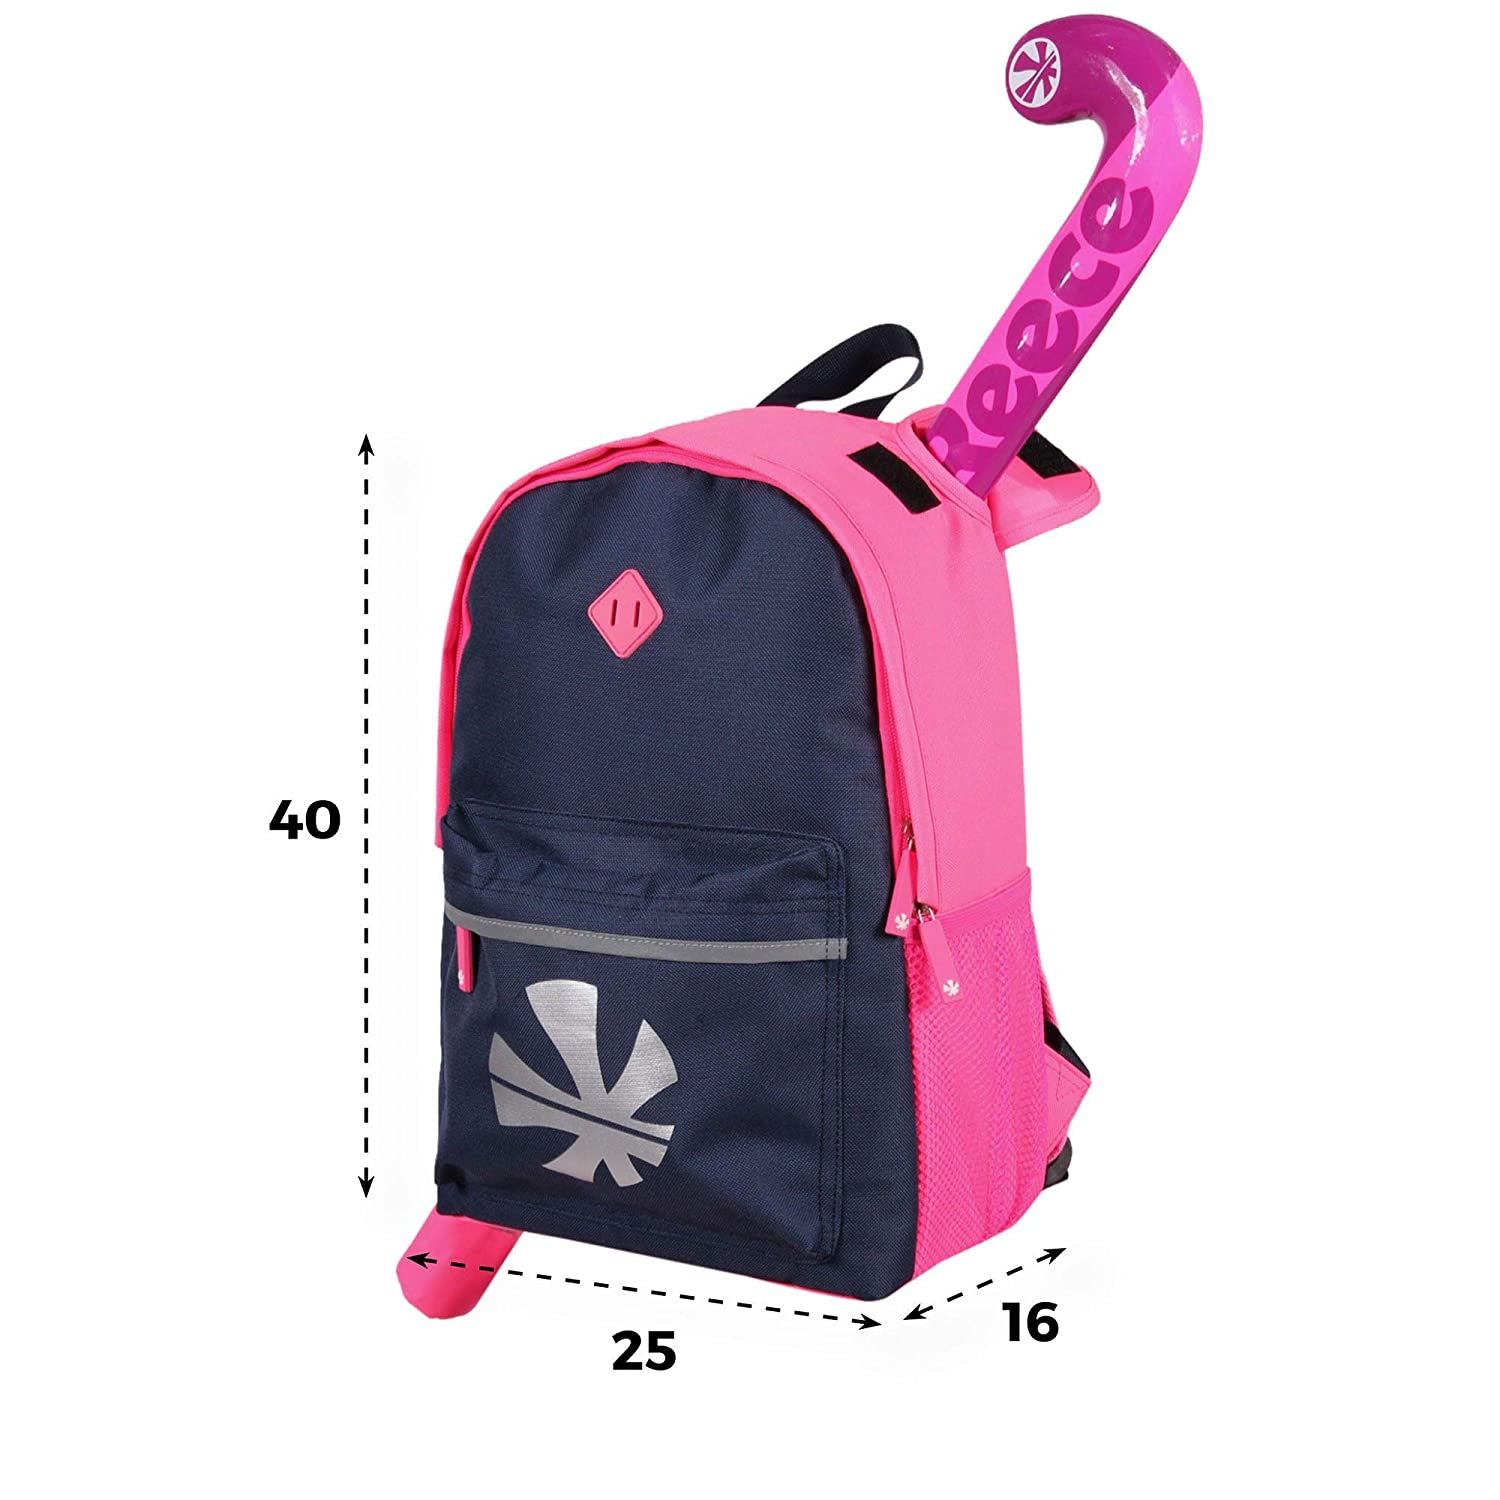 Sports Innovation Reece Cowell Hockey Stick Backpack Rucksack - Pink/Navy